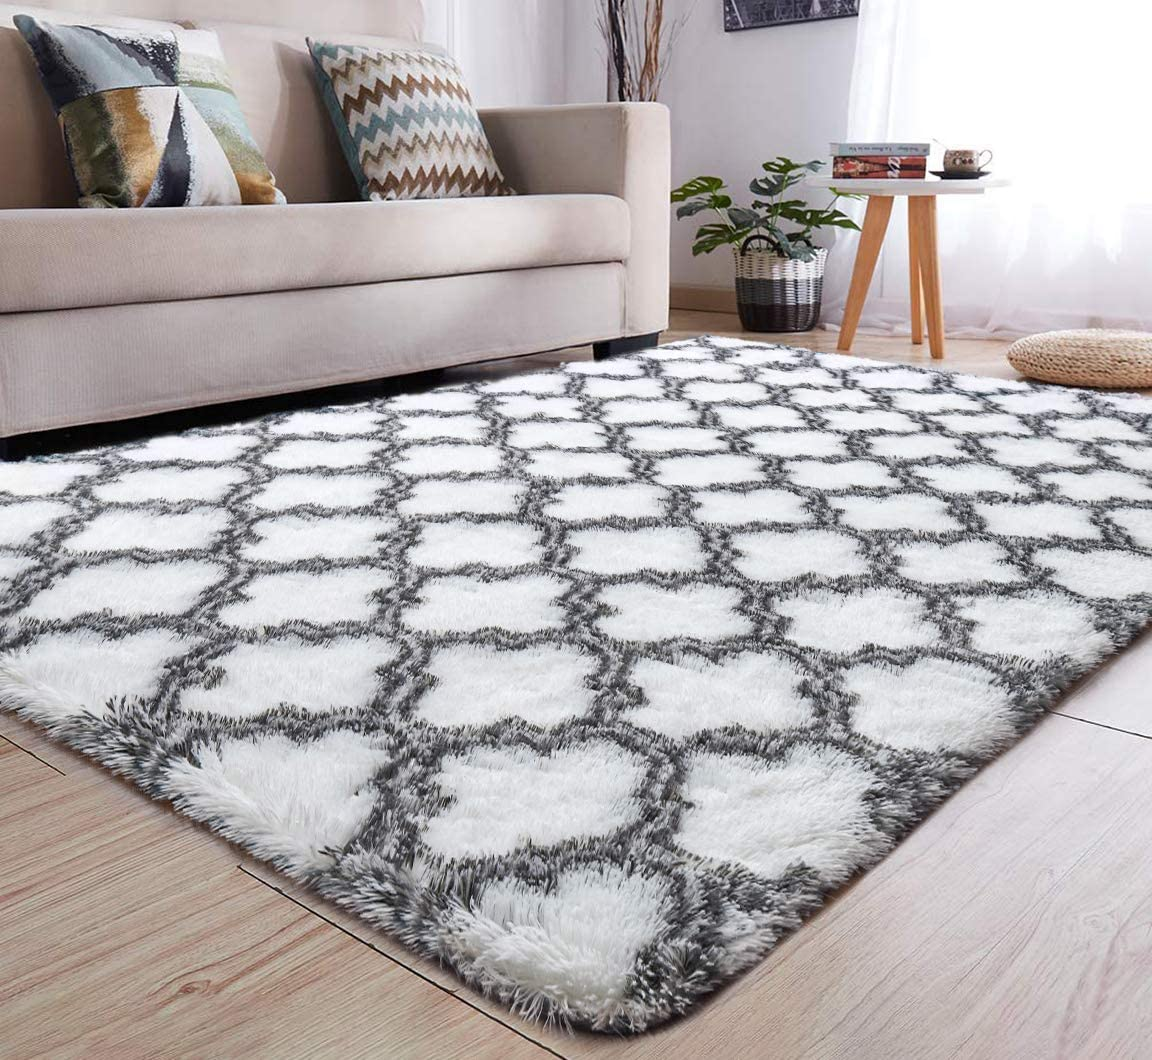 YJ.GWL Soft Indoor Large Modern Area Rugs Shaggy Patterned Fluffy Carpets Suitable for Living Room and Bedroom Nursery Rugs Home Decor Rugs for Christmas and Thanksgiving 4'x6'White Trellis